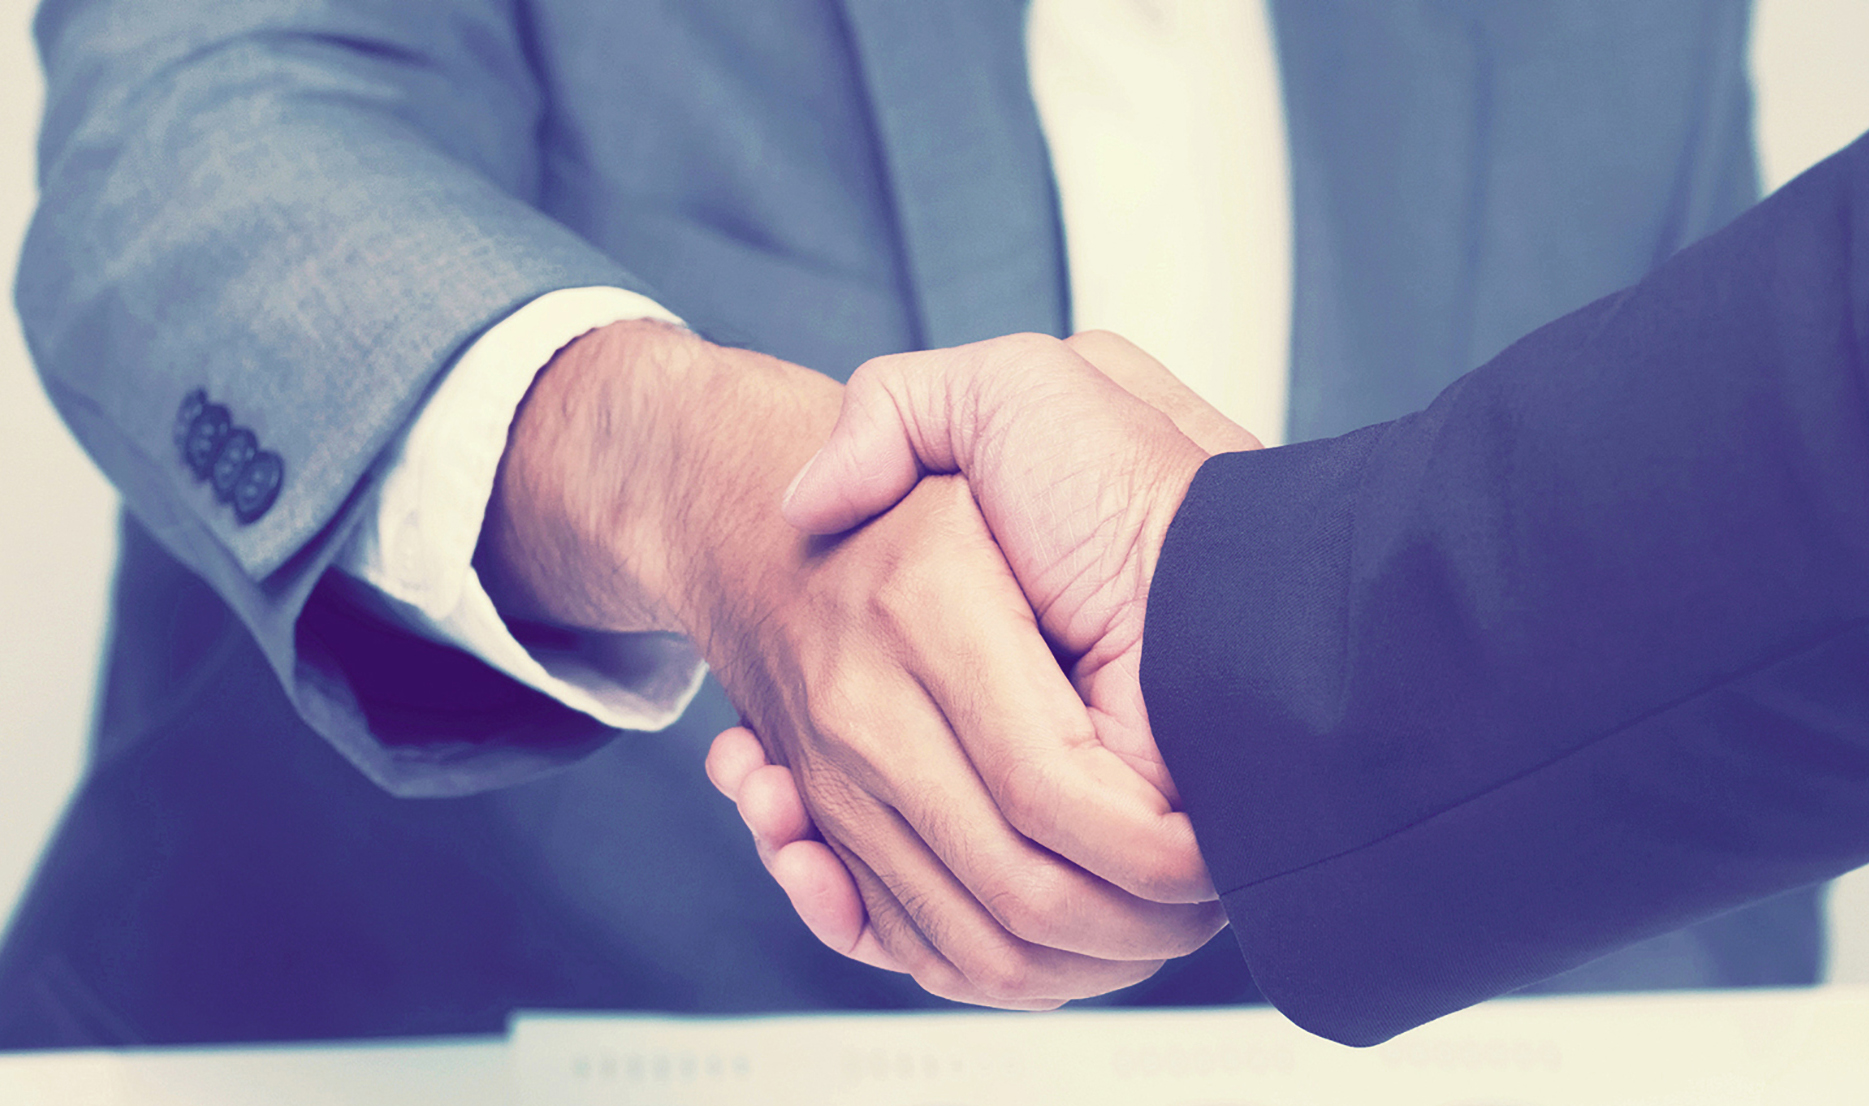 businessman shaking hands, business connection concept.